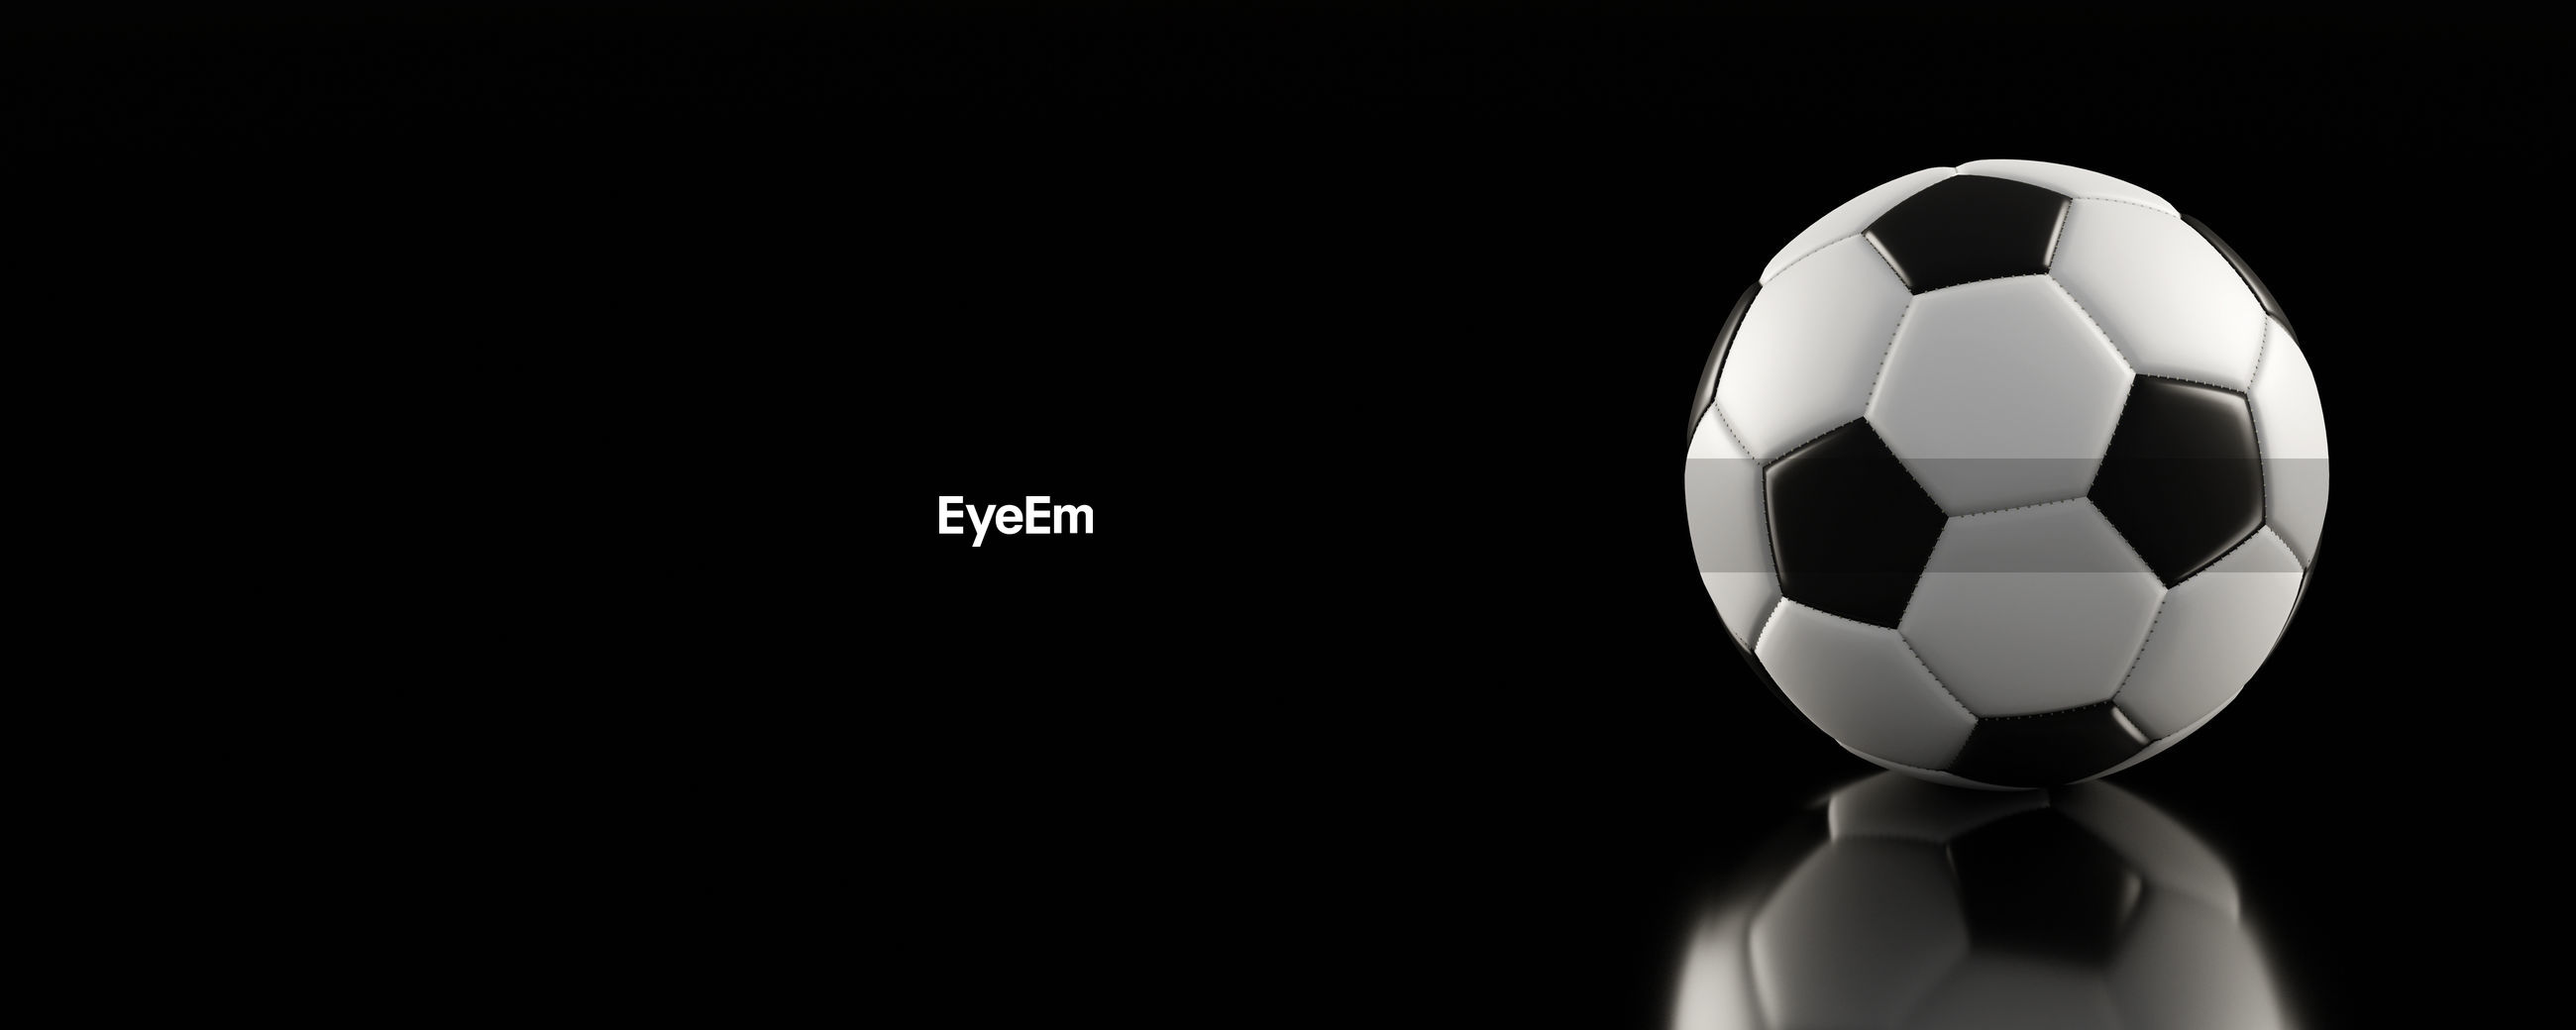 Panoramic view of soccer ball against black background